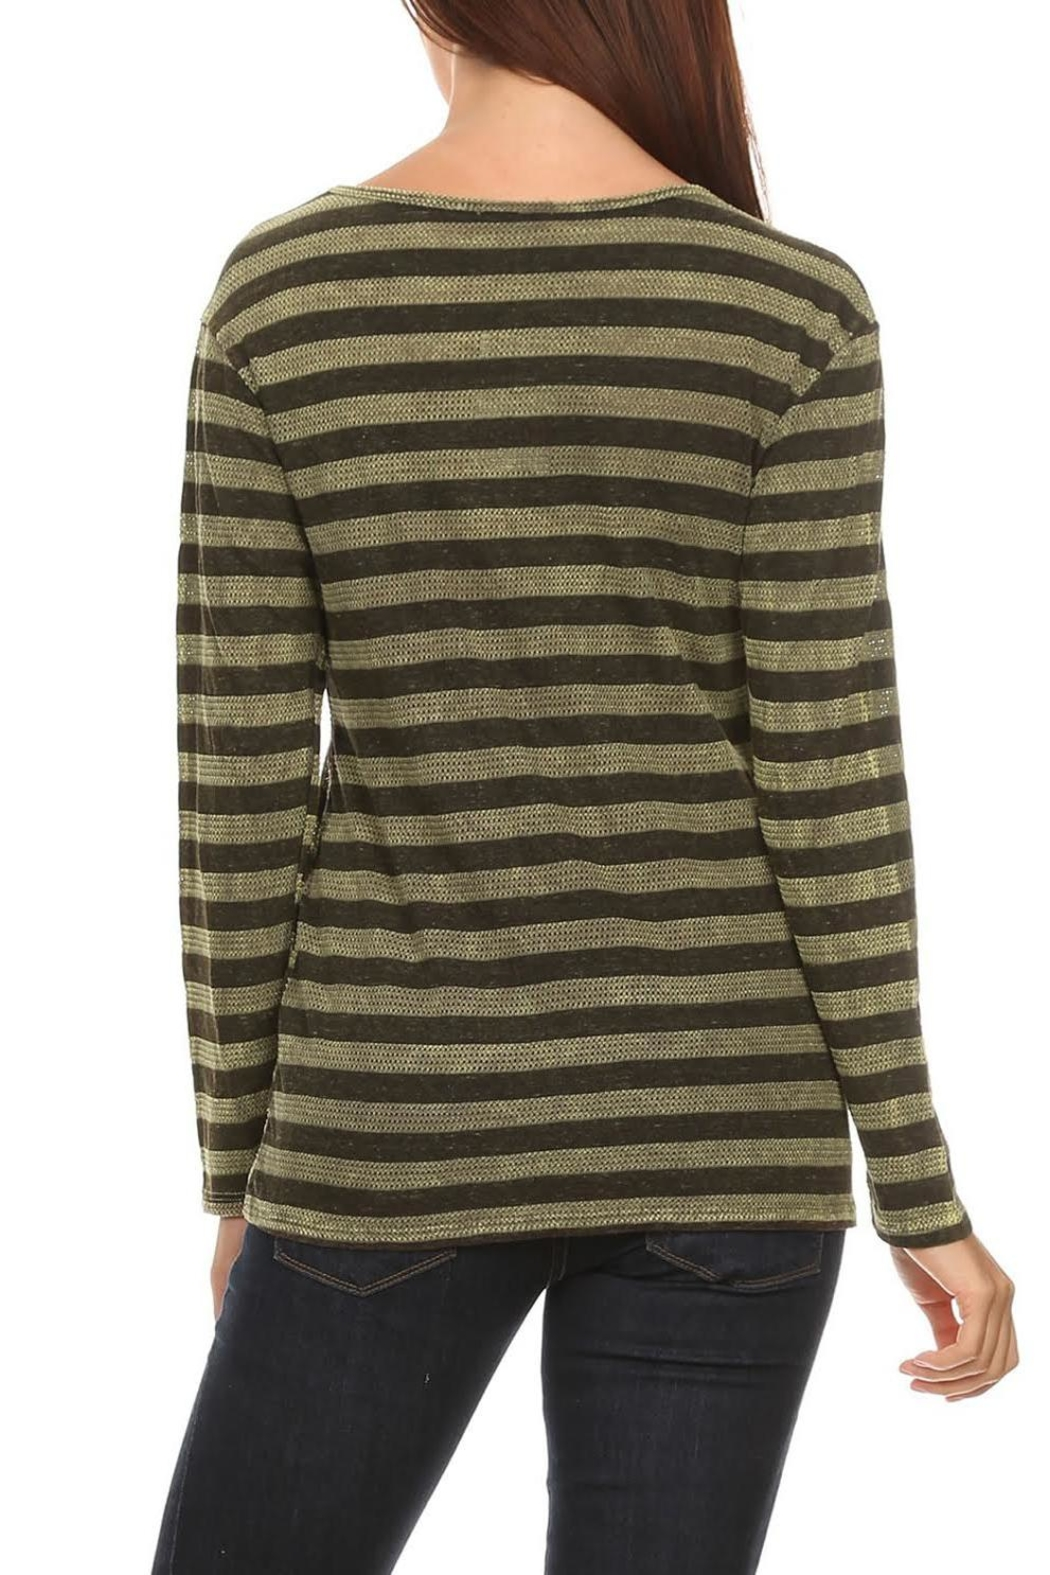 T Party Olive-Striped Long-Sleeve Tee - Front Full Image